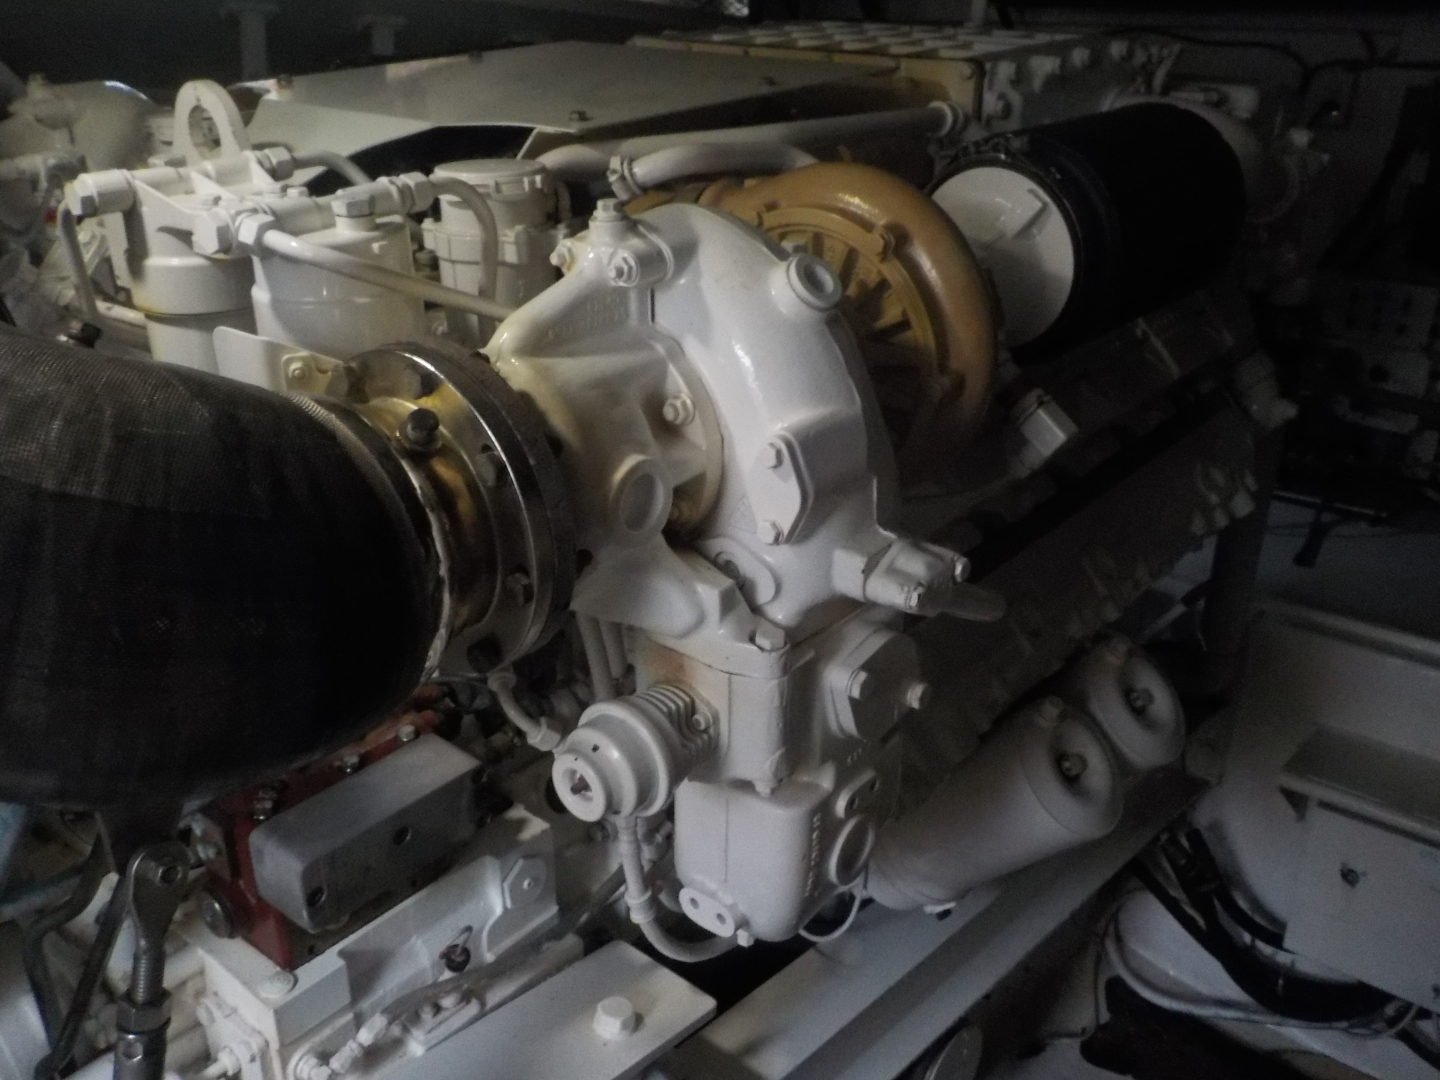 Viking-Convertible 1995-Royal Fortune Fort Lauderdale-Florida-United States-Engine Room-1512495 | Thumbnail